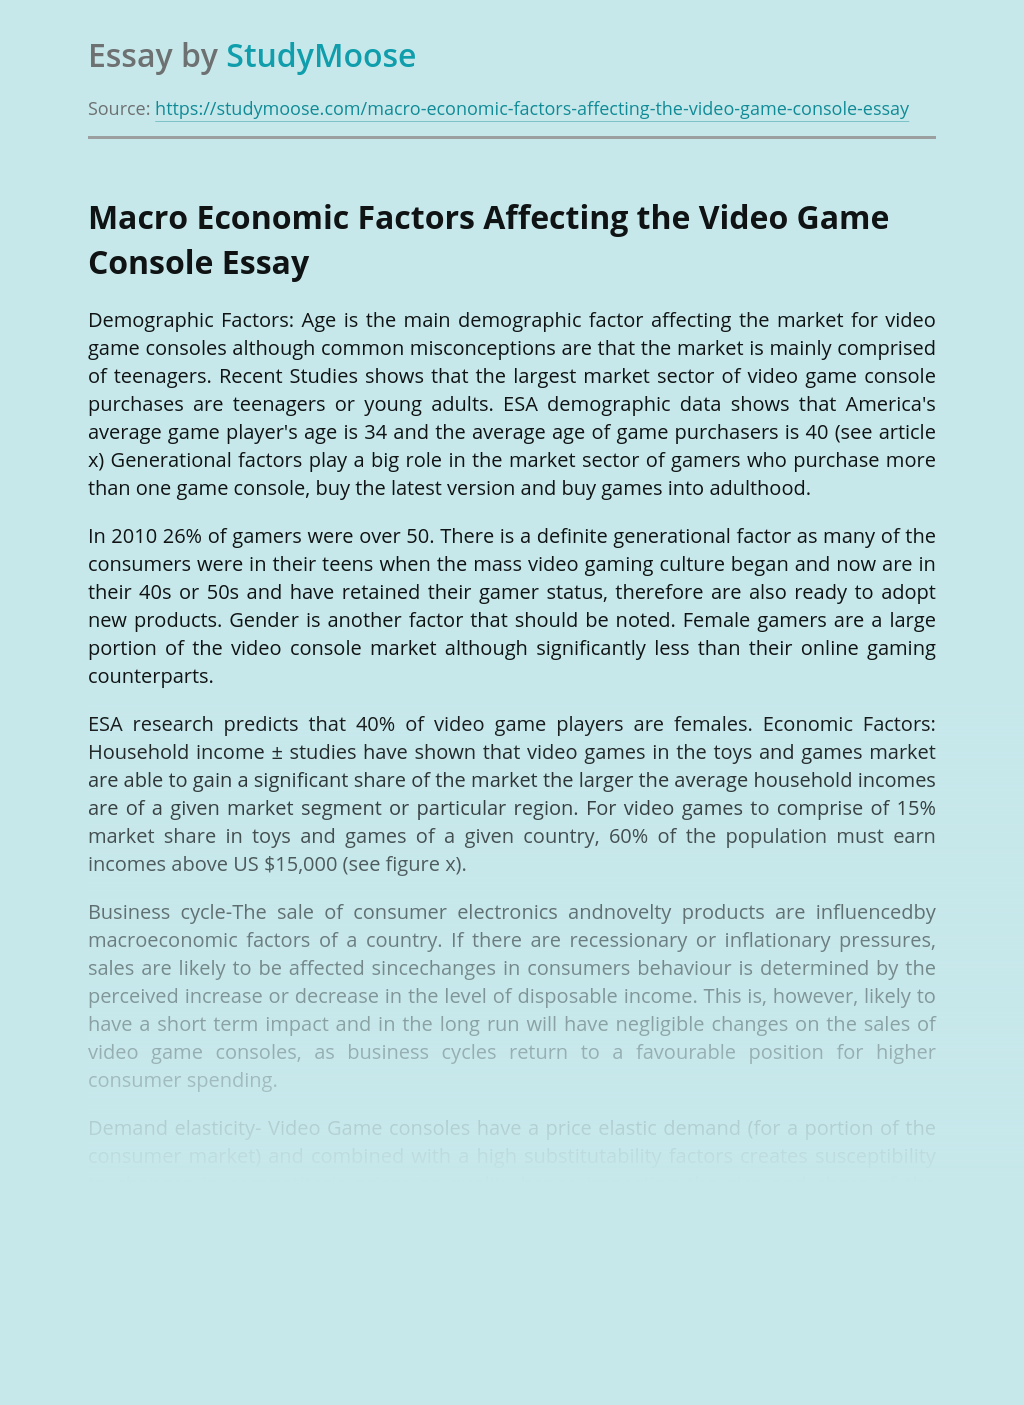 Macro Economic Factors Affecting the Video Game Console